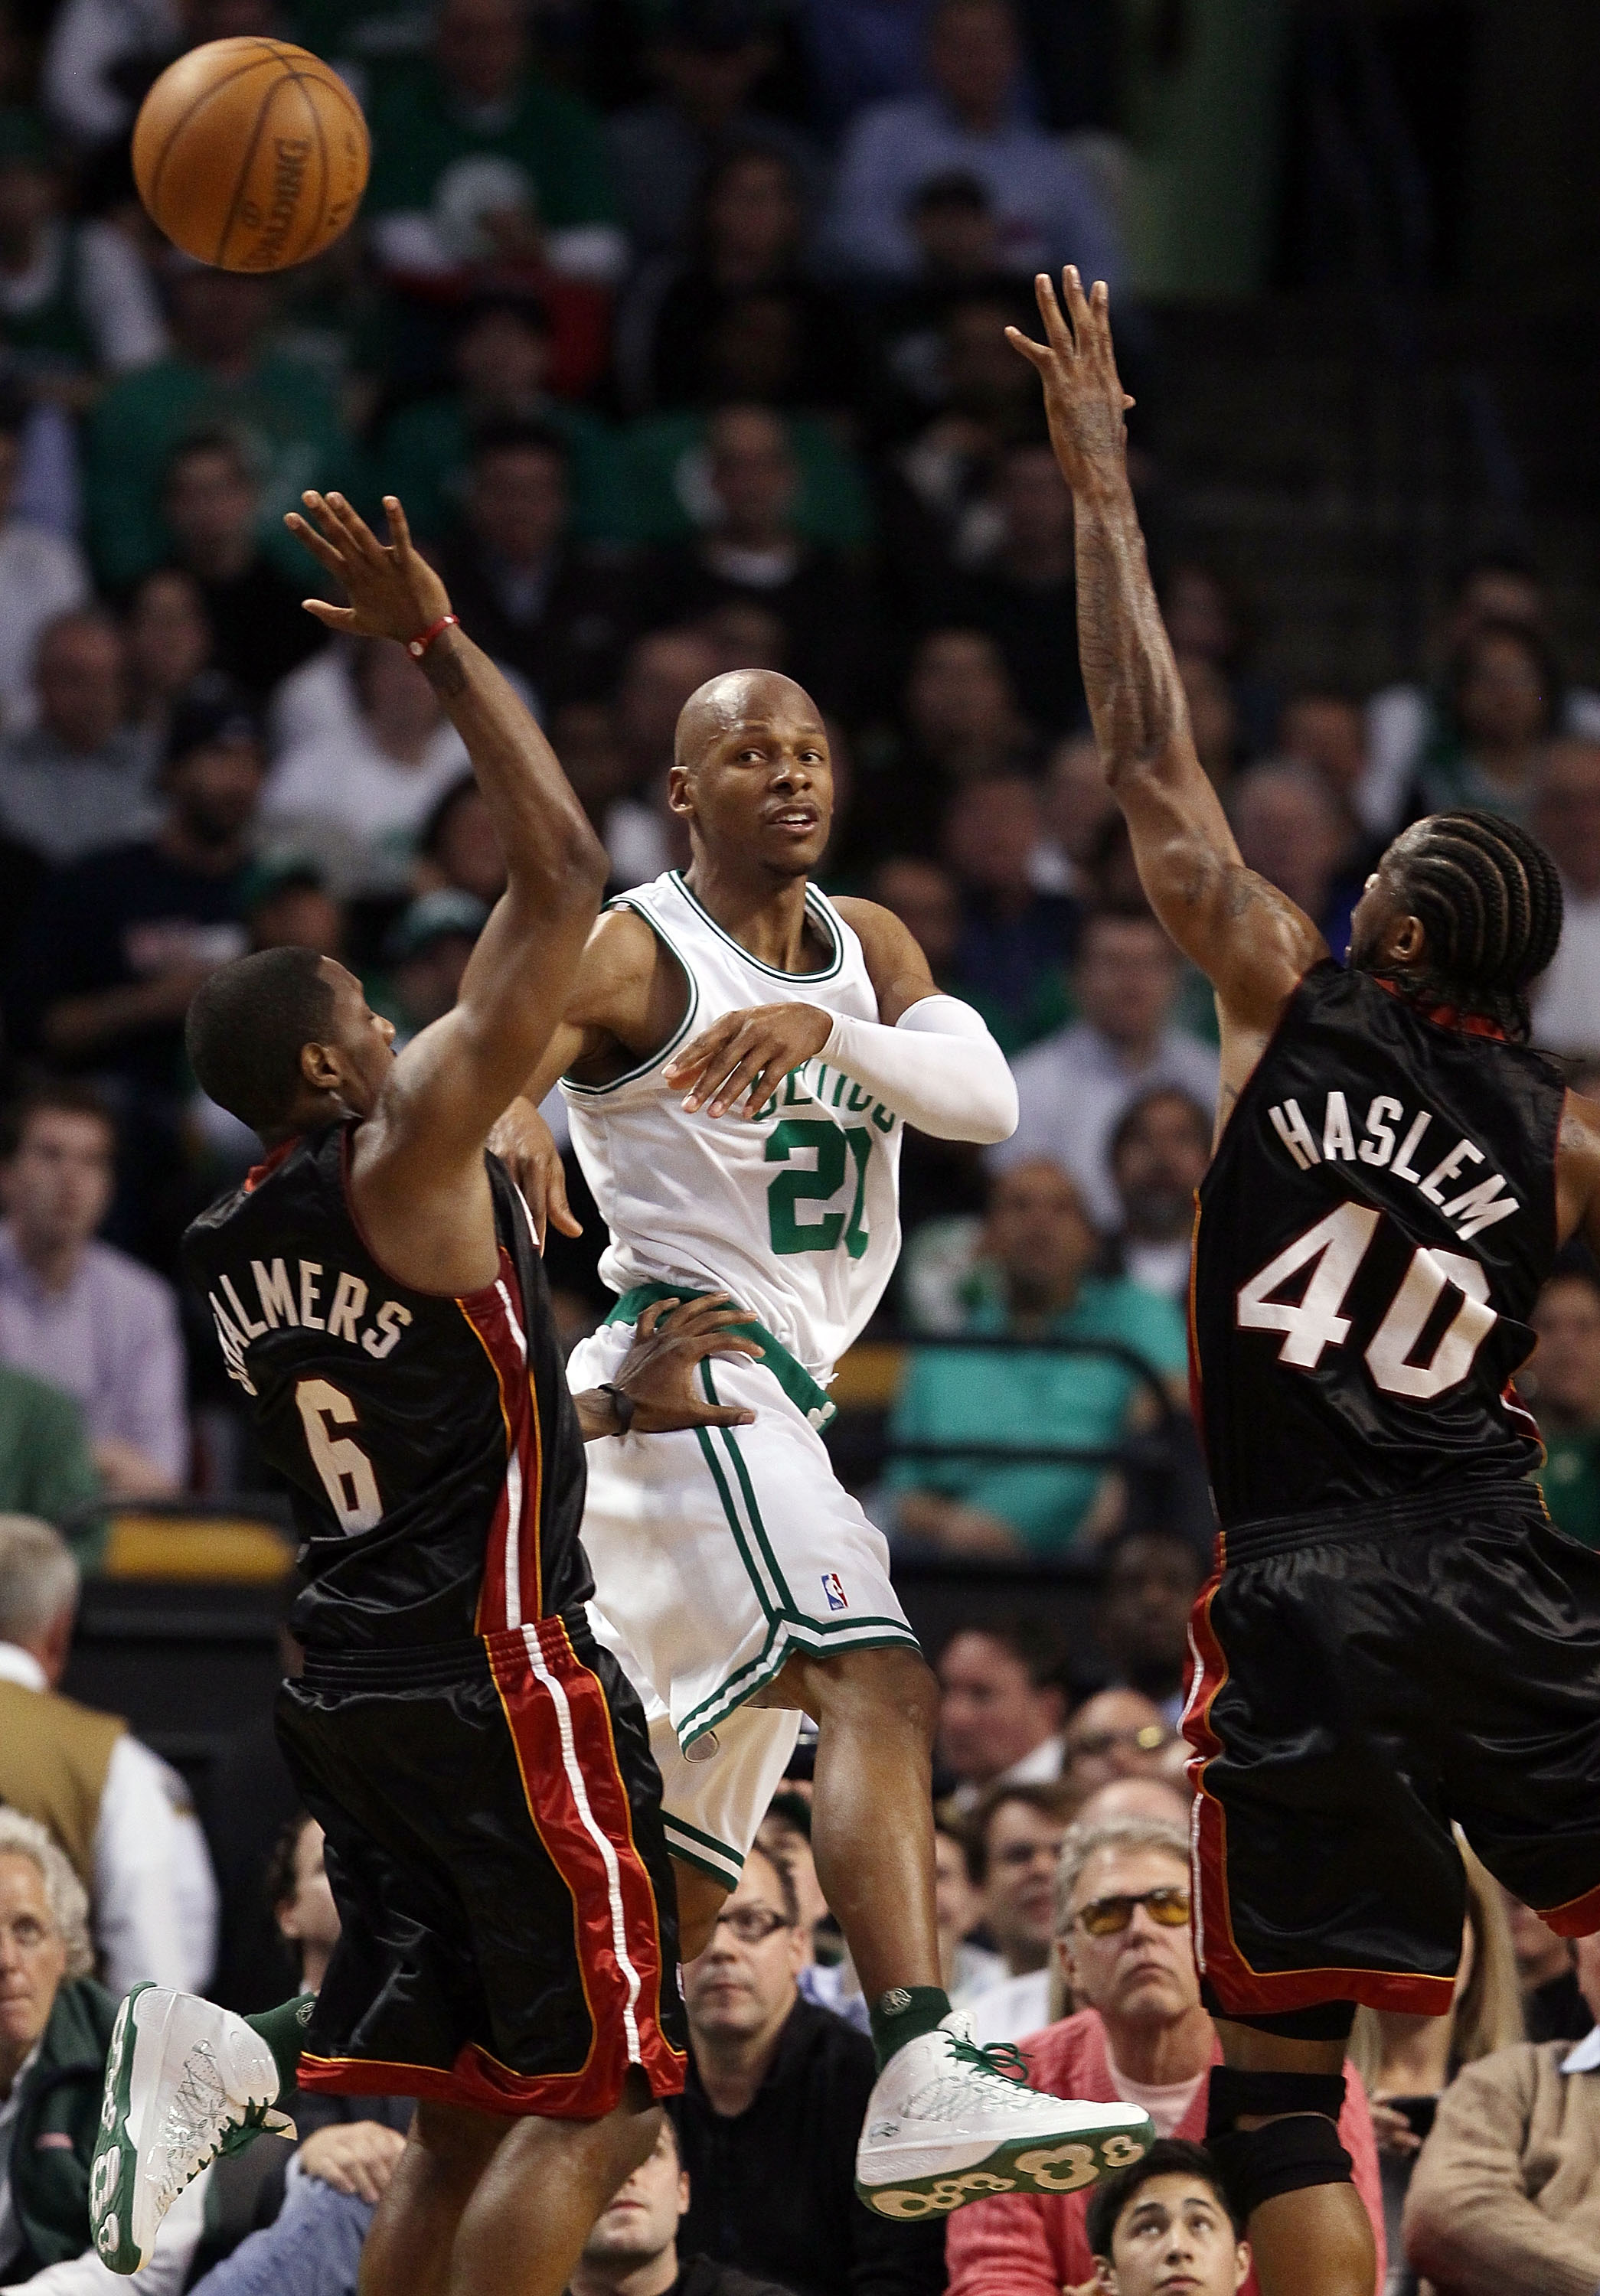 BOSTON - APRIL 27:  Ray Allen #20 of the Boston Celtics passes the ball under pressure from Mario Chalmers #6 and Udonis Haslem #40 of the Miami Heat during Game Five of the Eastern Conference Quarterfinals of the 2010 NBA playoffs at the TD Garden on Apr